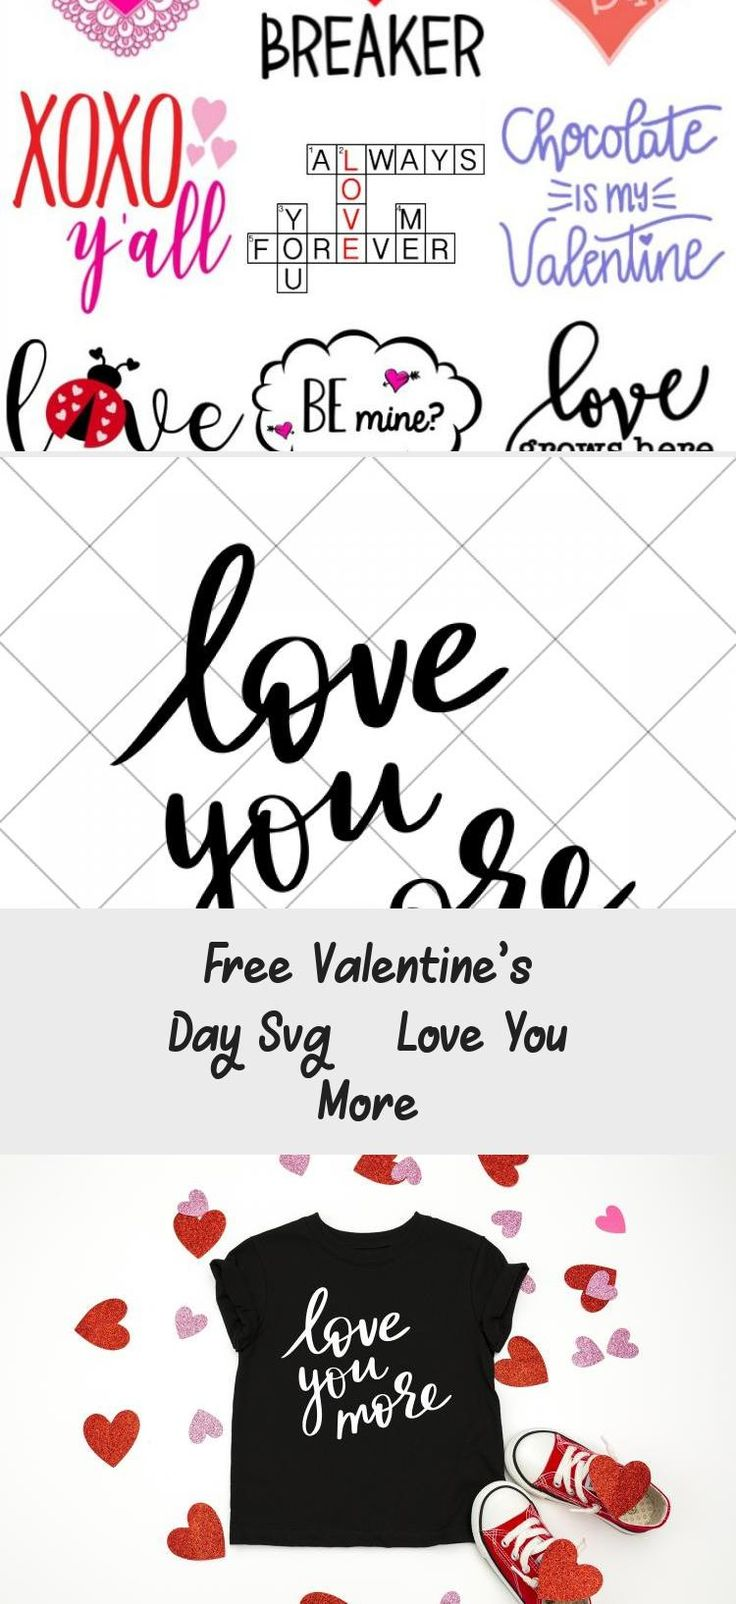 Download Free Valentine's Day Svg - Love You More | Love you more ...